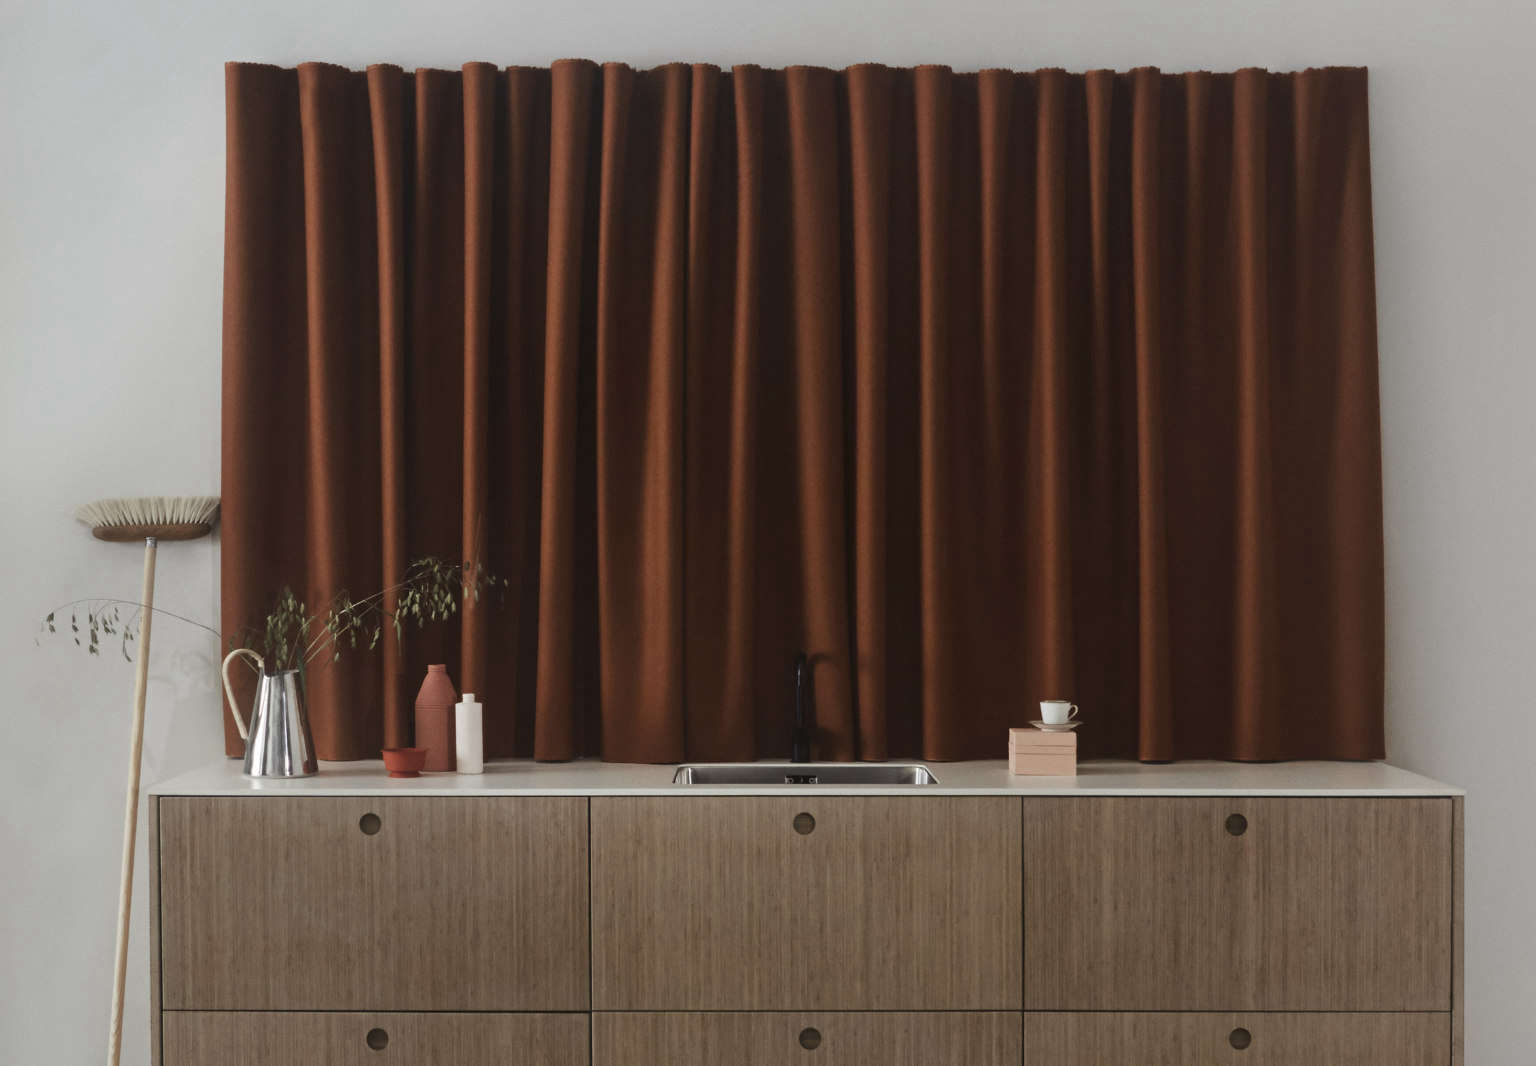 Ikea Elevated: Kitchen Cabinet Fronts Made of a Surprise Sustainable Material